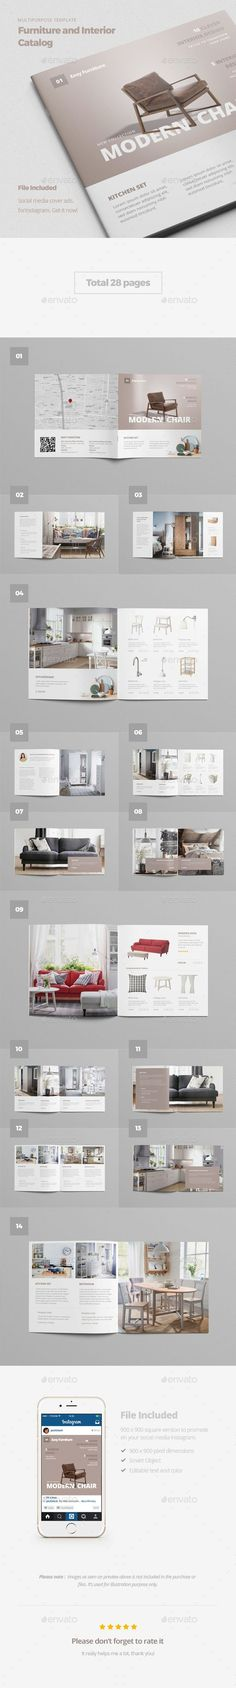 Furniture and Interior Catalog Brochure Template PSD #design Download: http://graphicriver.net/item/furniture-and-interior-catalog/13366214?ref=ksioks: